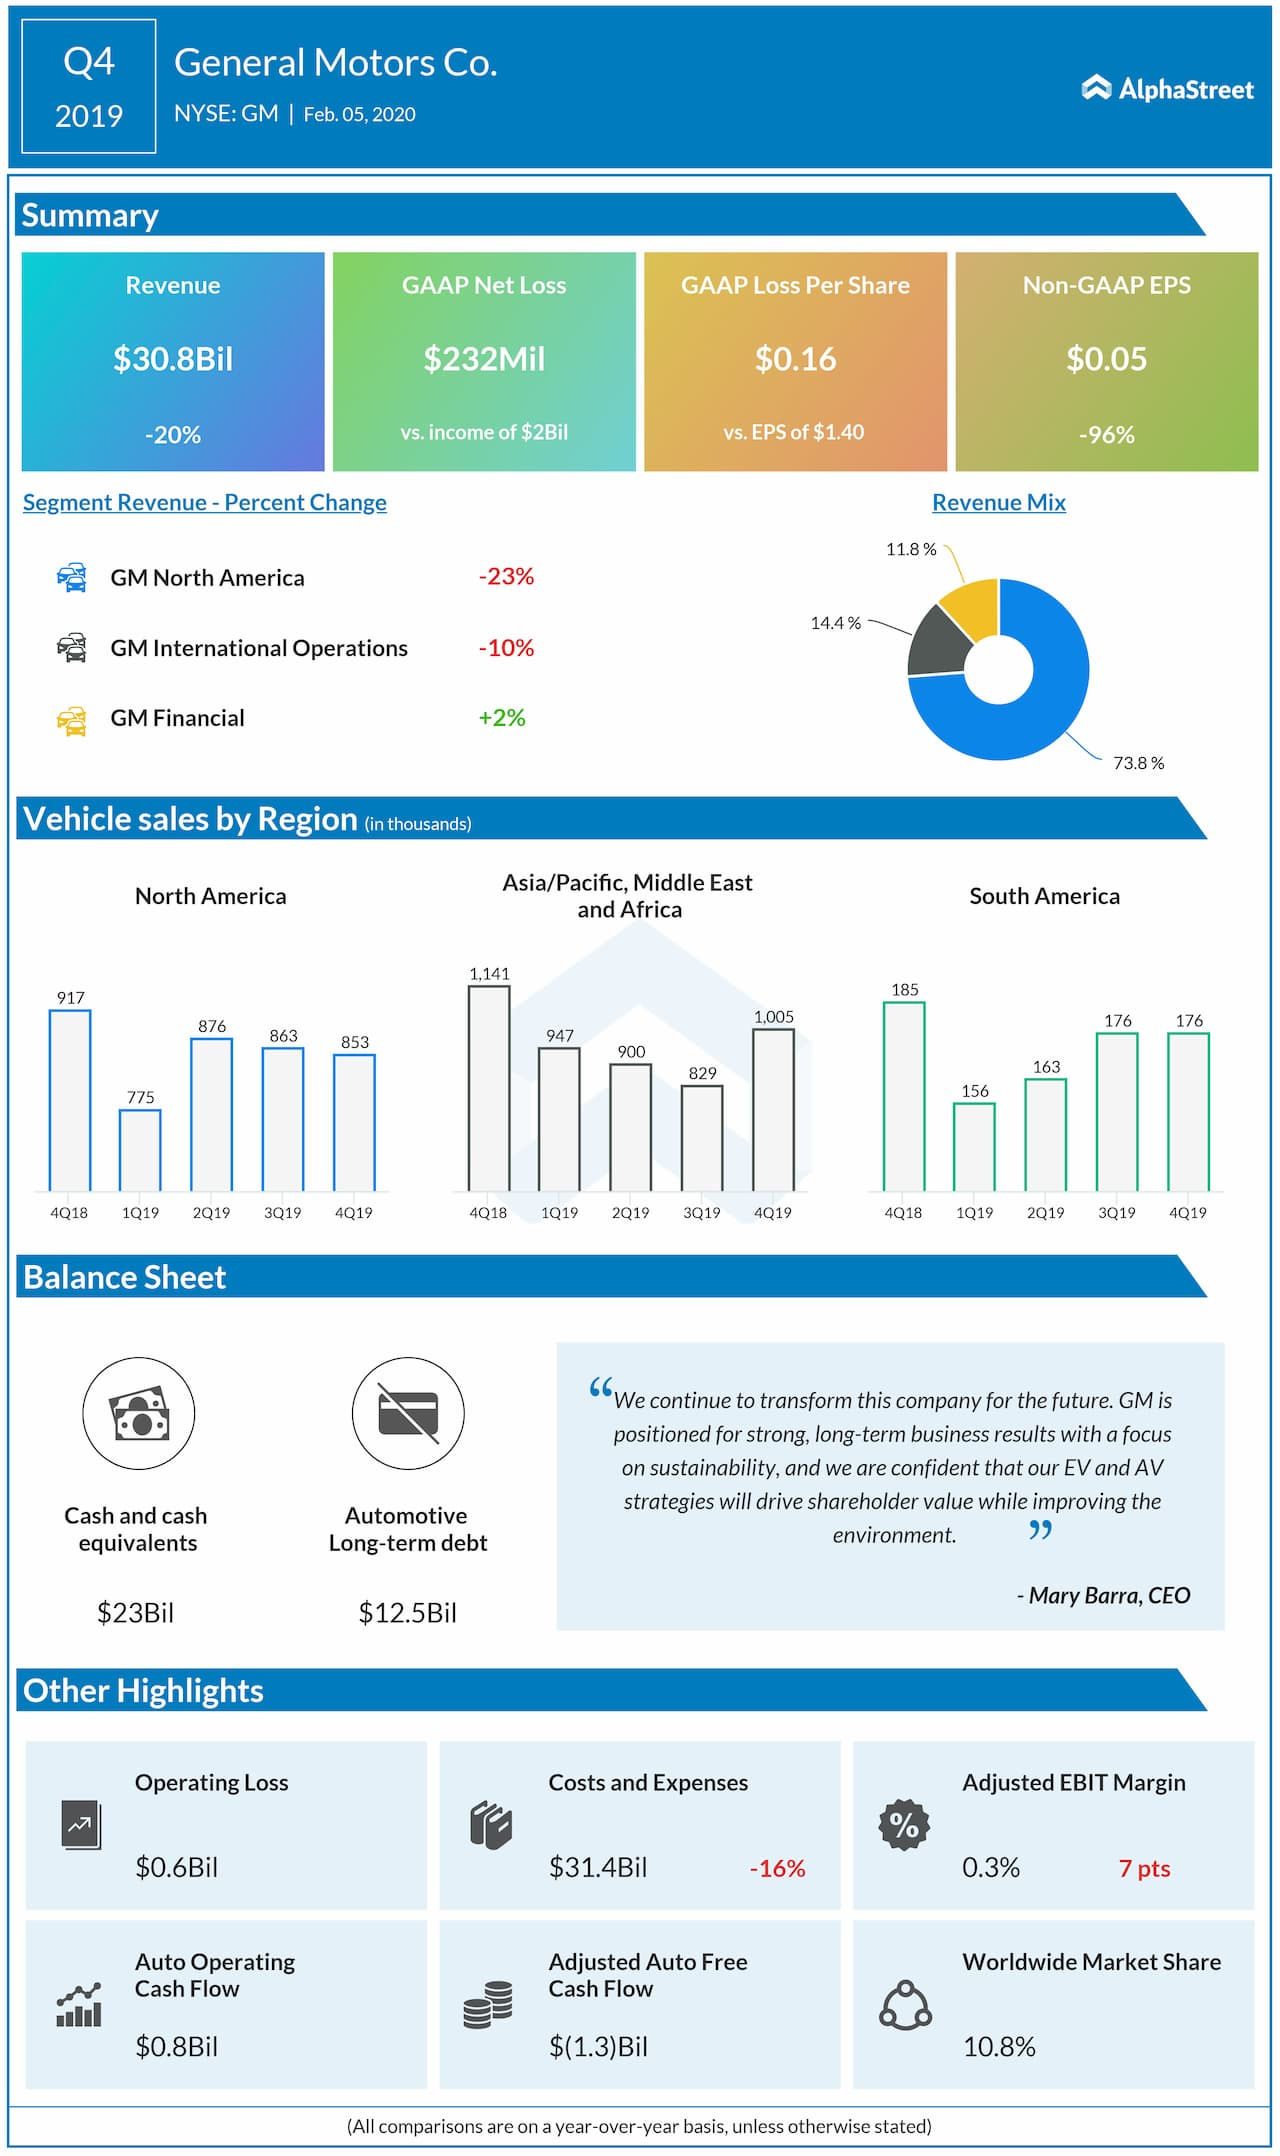 General Motors reports Q4 2019 earnings results